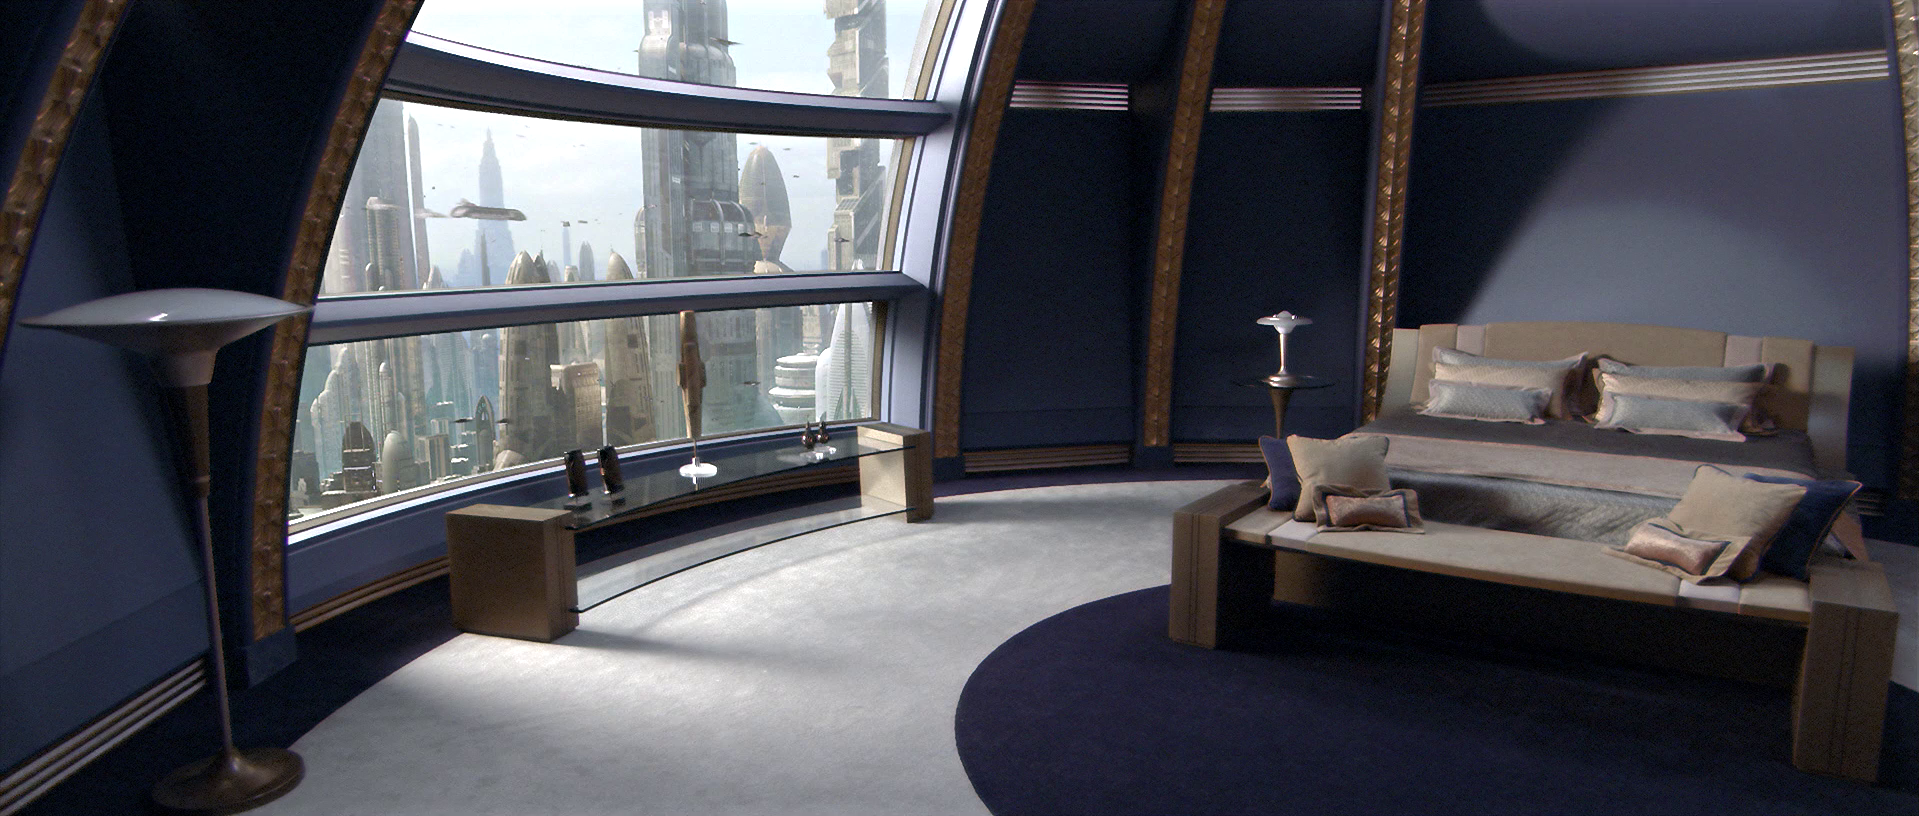 Padmé Amidala S Apartment Wookieepedia The Star Wars Wiki